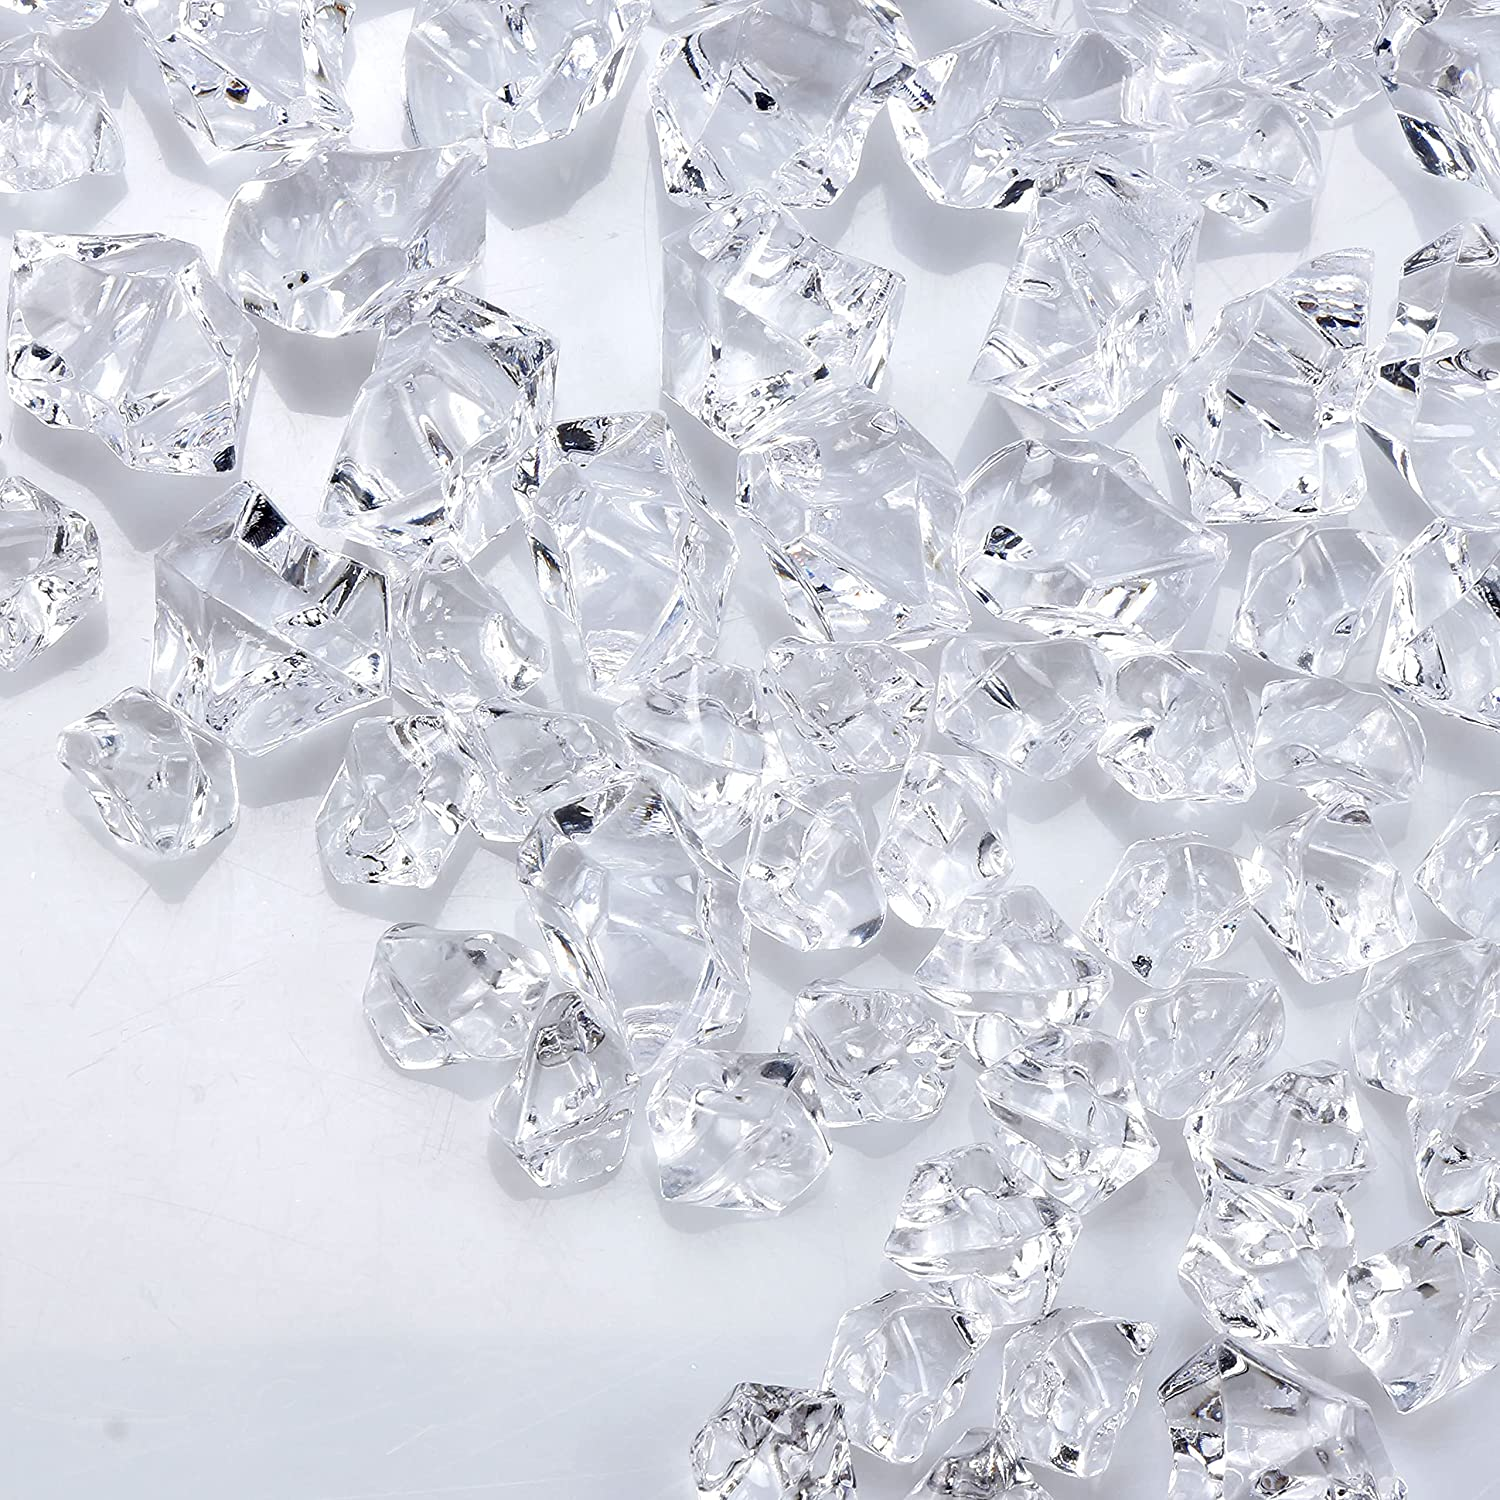 Bymore 1200 Pieces Clear Fake Limited Special Price Ice - Diamond 4.9 Crysta Rocks Lbs Special Campaign